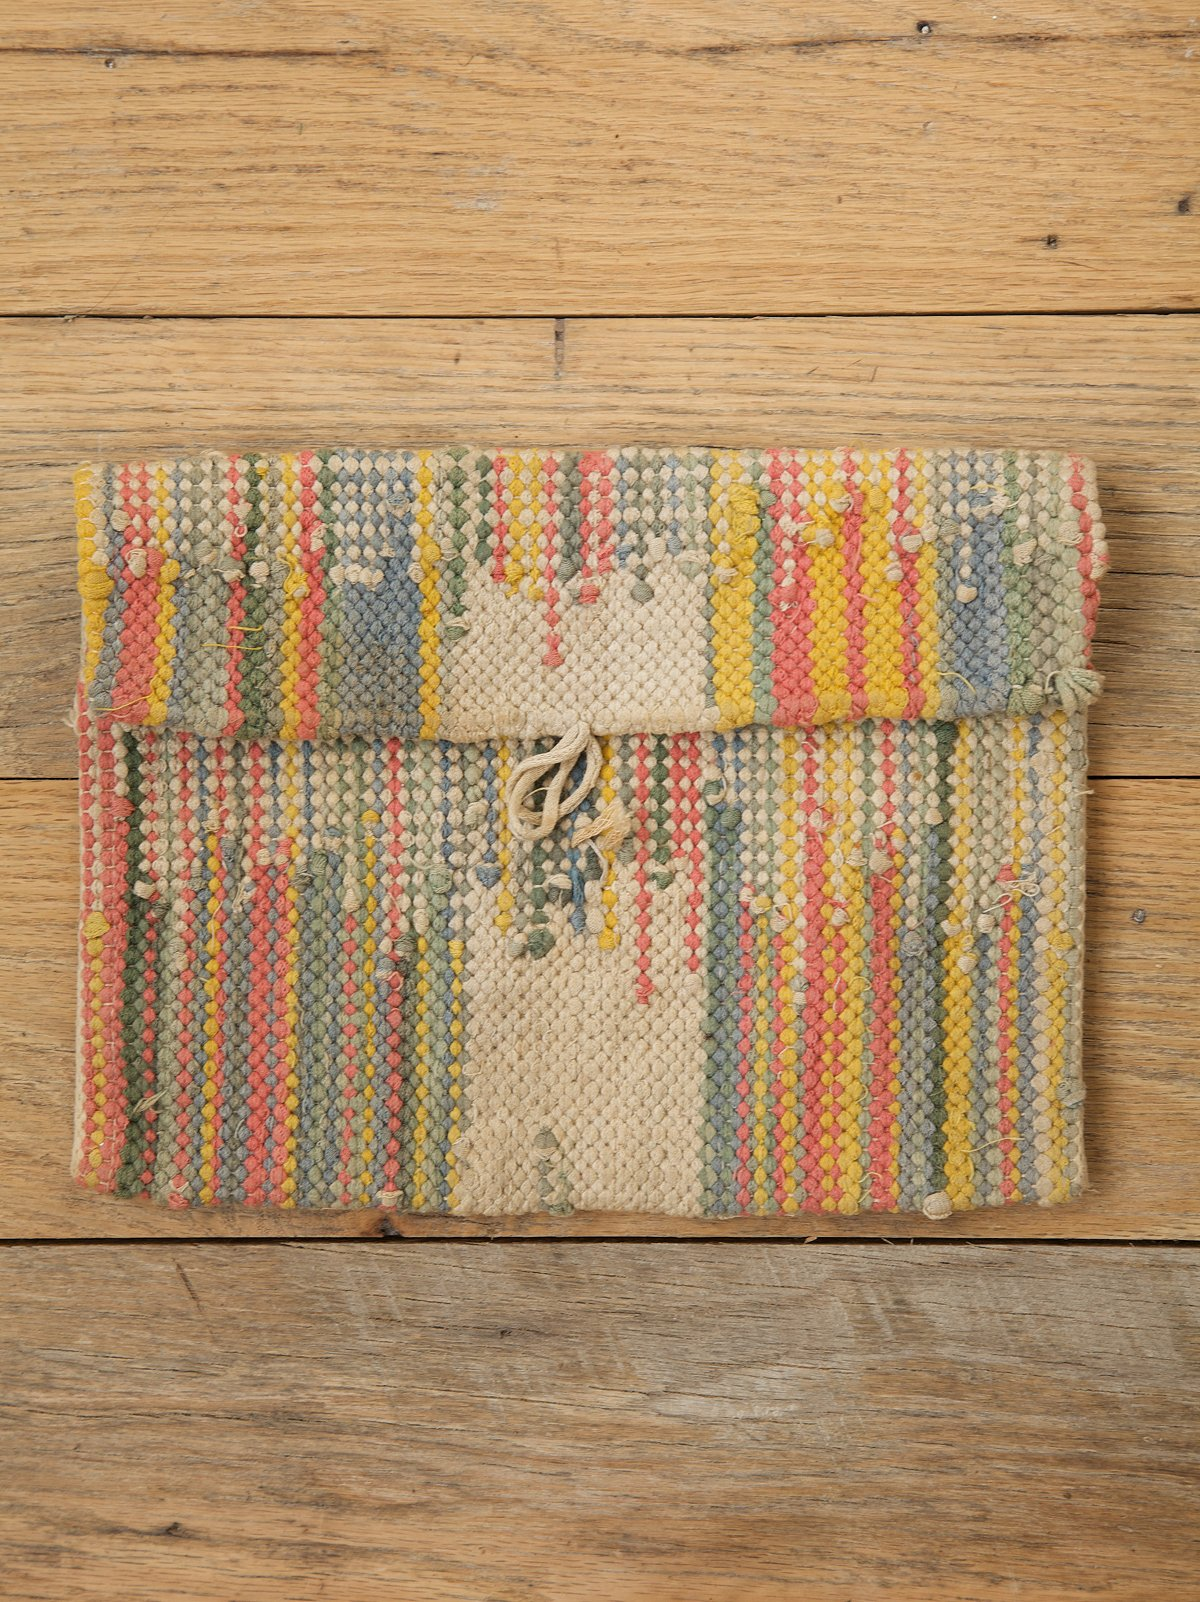 Vintage Multi-Colored Woven Clutch